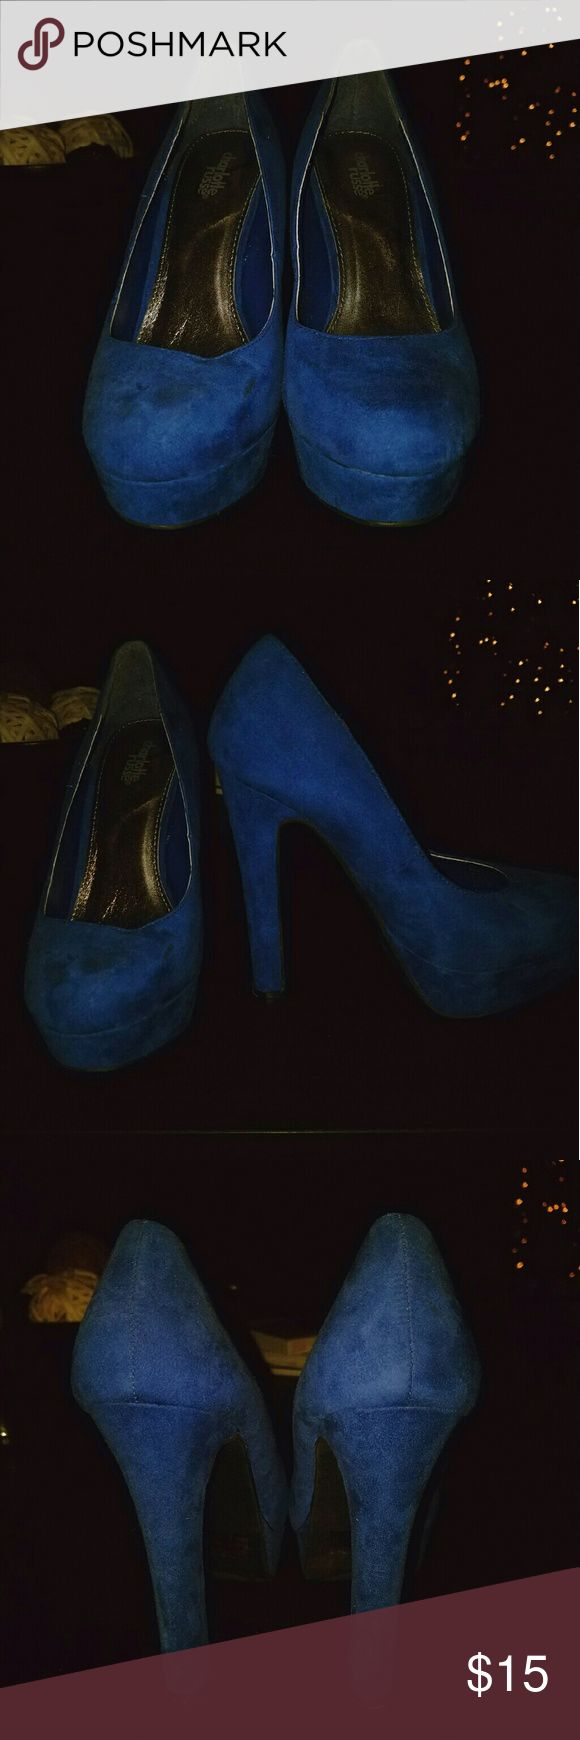 Colbat Blue Suede Pumps These run small may fit a 6. Only wore once probably just needs to be cleaned (probably a little dirty from moving and them being in storage) Charlotte Russe Shoes Heels